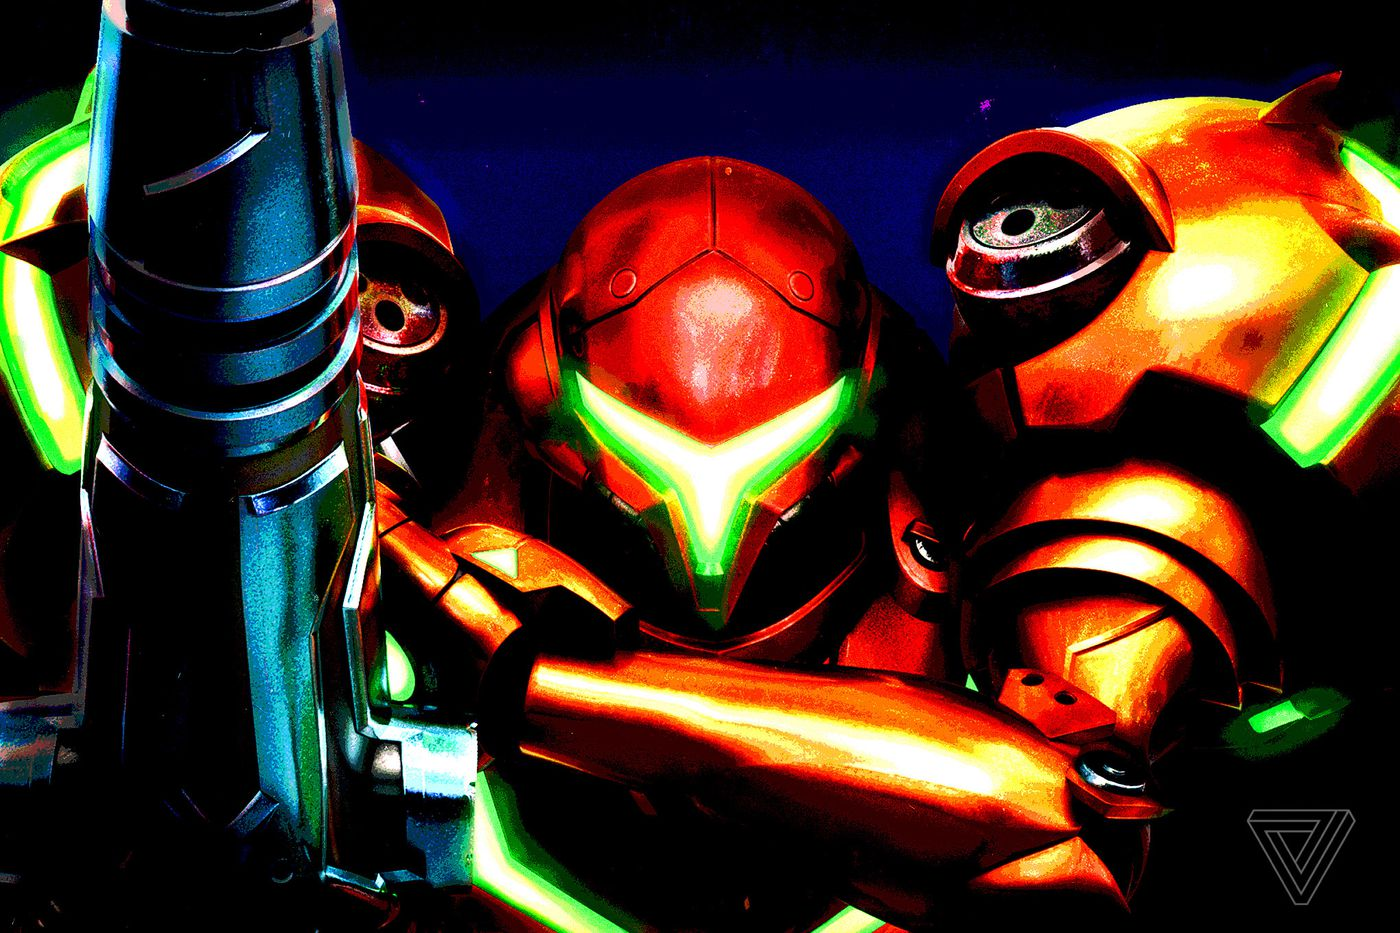 If you're craving a Metroid game on the Switch, try these new indie